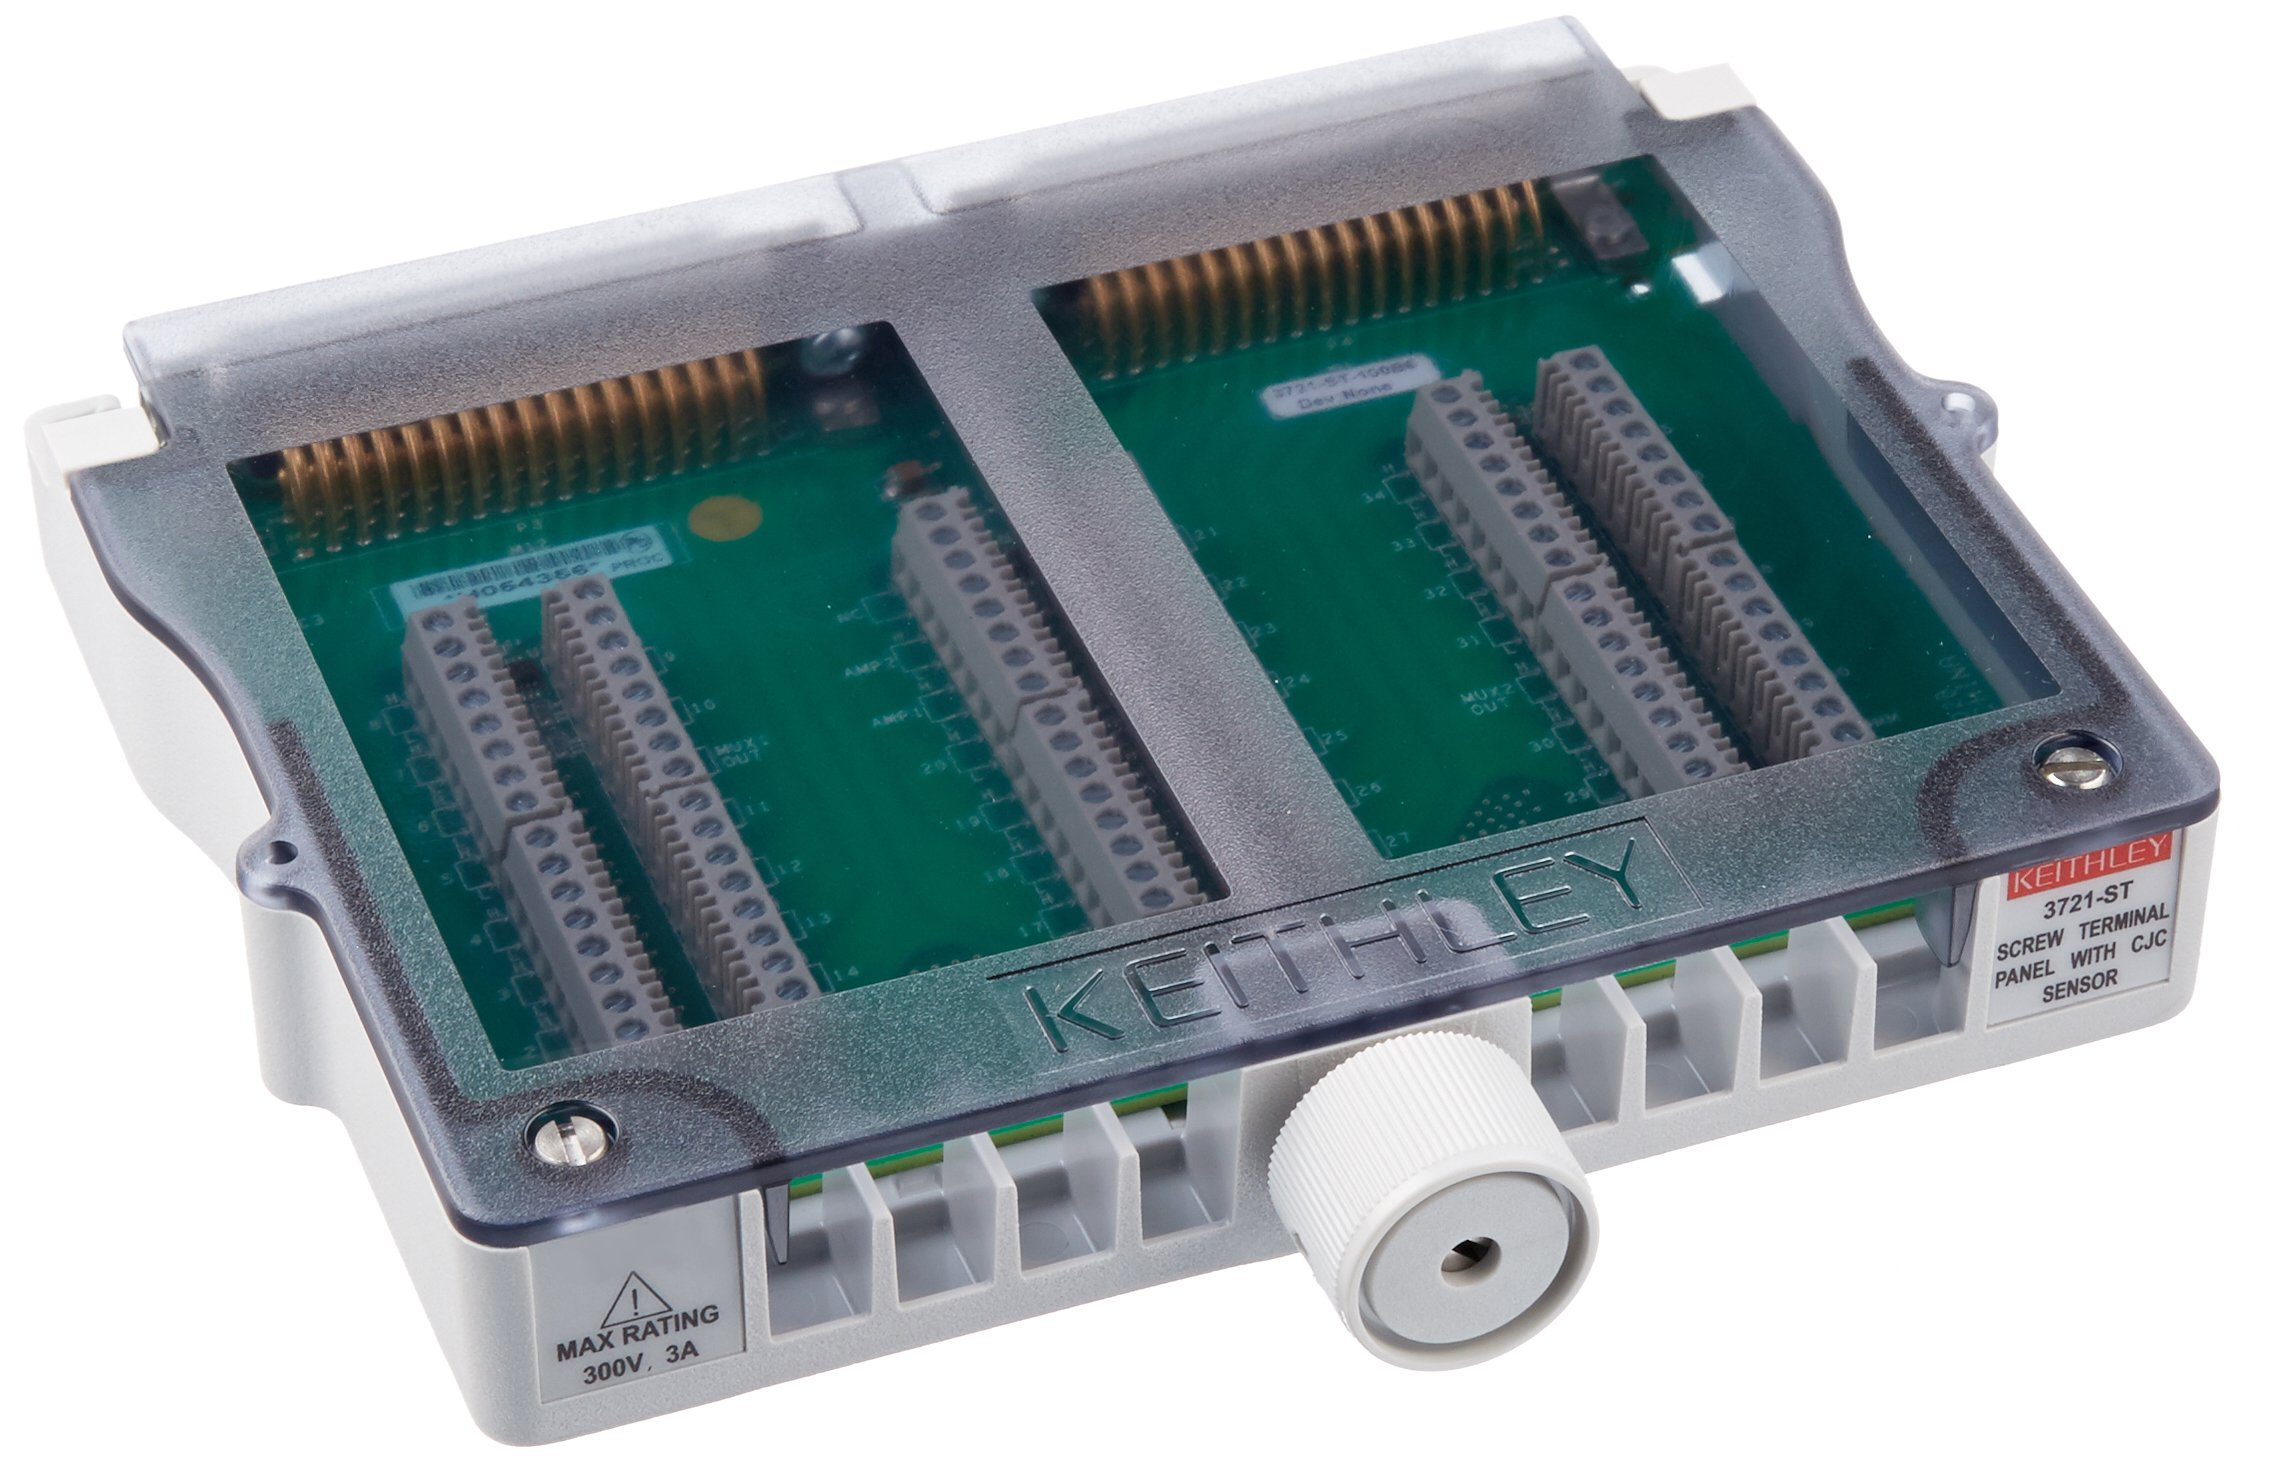 Keithley 3721-ST Screw Terminal Block Required for Auto CJC Thermocouple Measurements